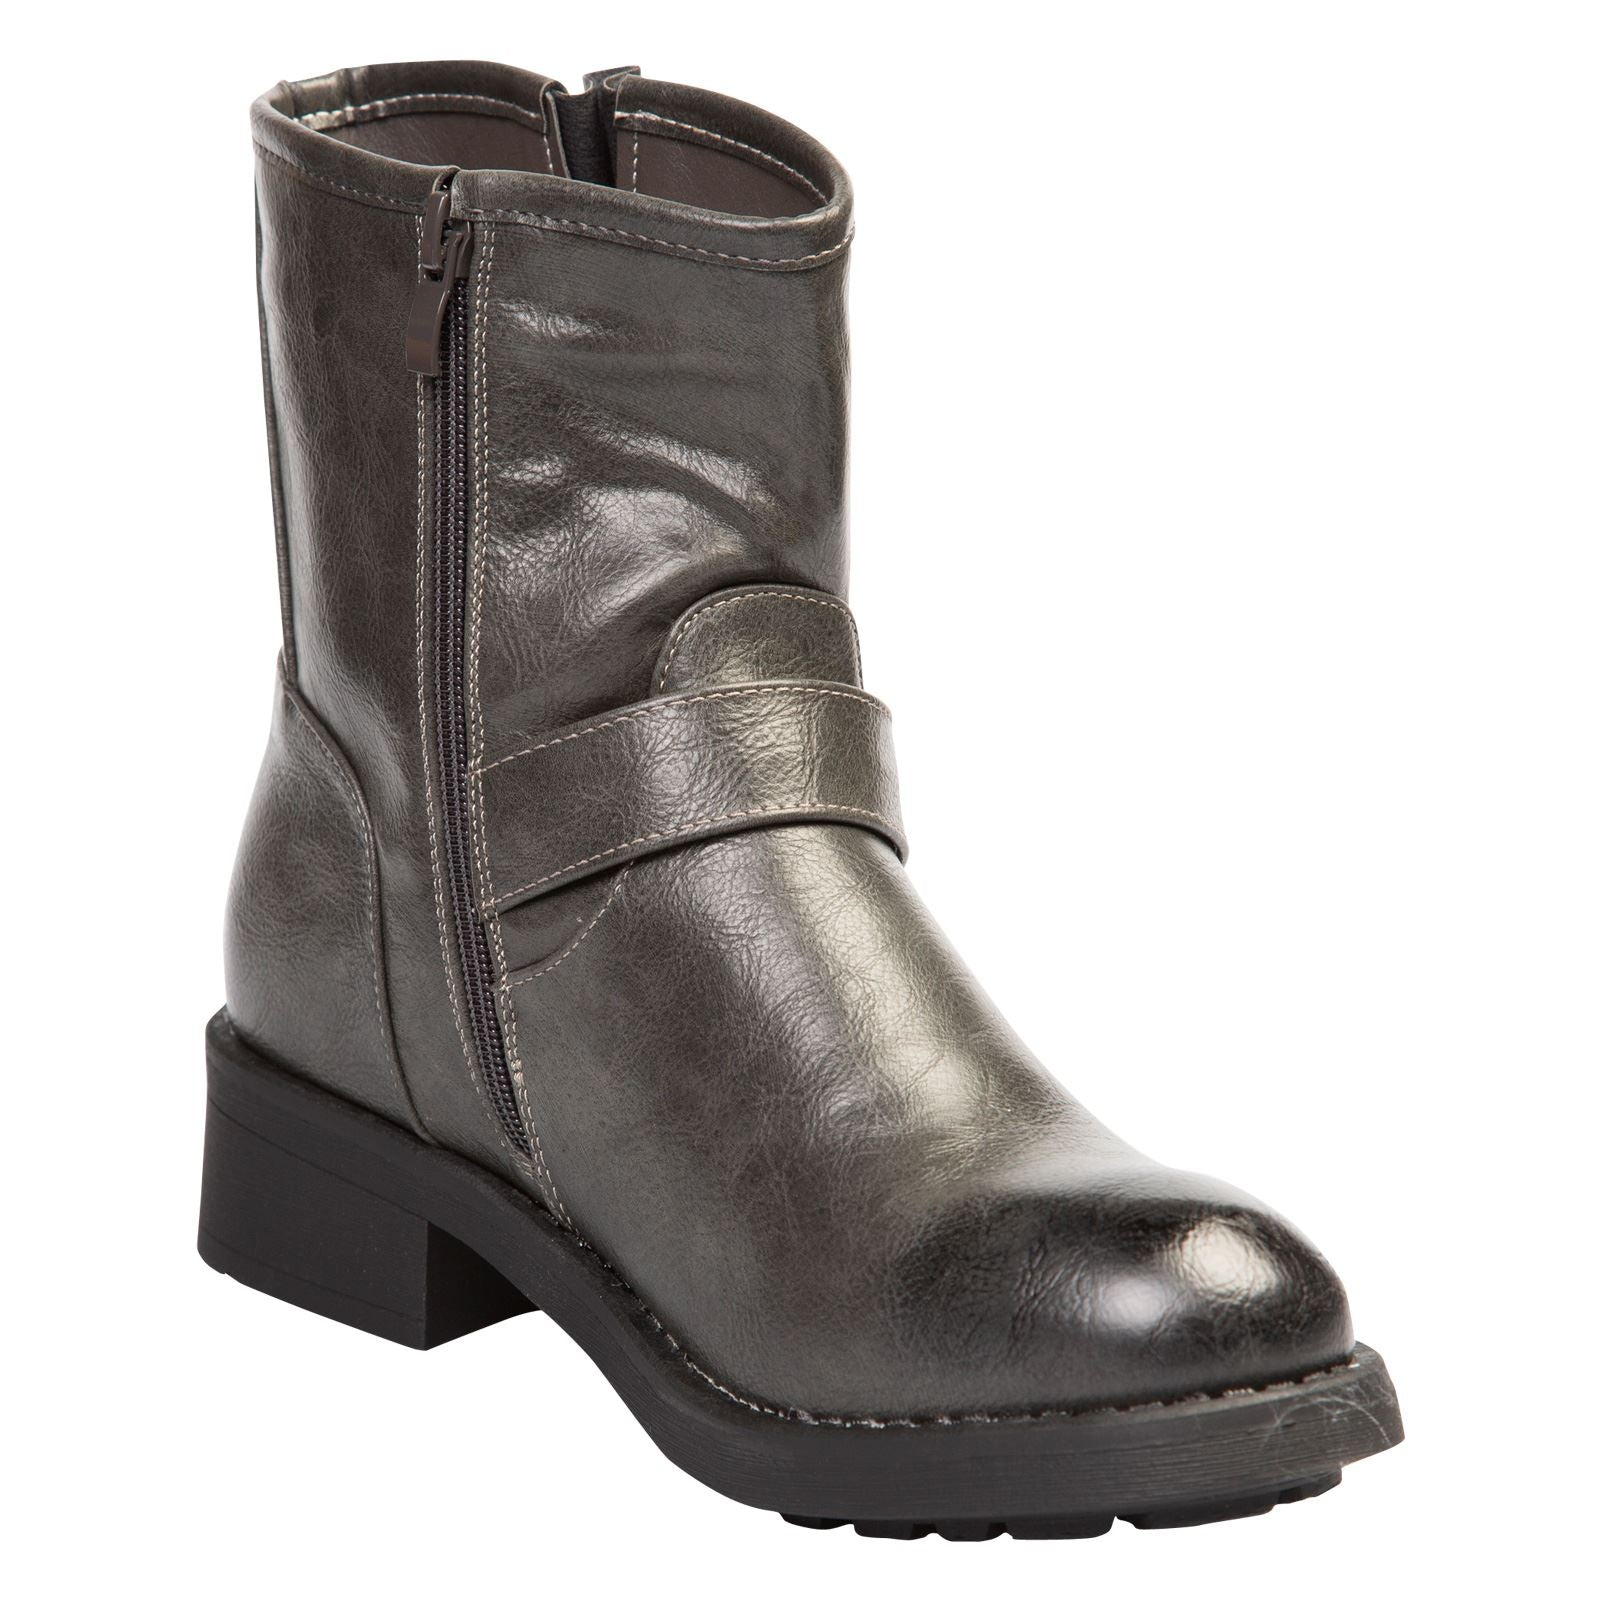 Valeria Biker Ankle Boots in Grey Faux Leather - Feet First Fashion